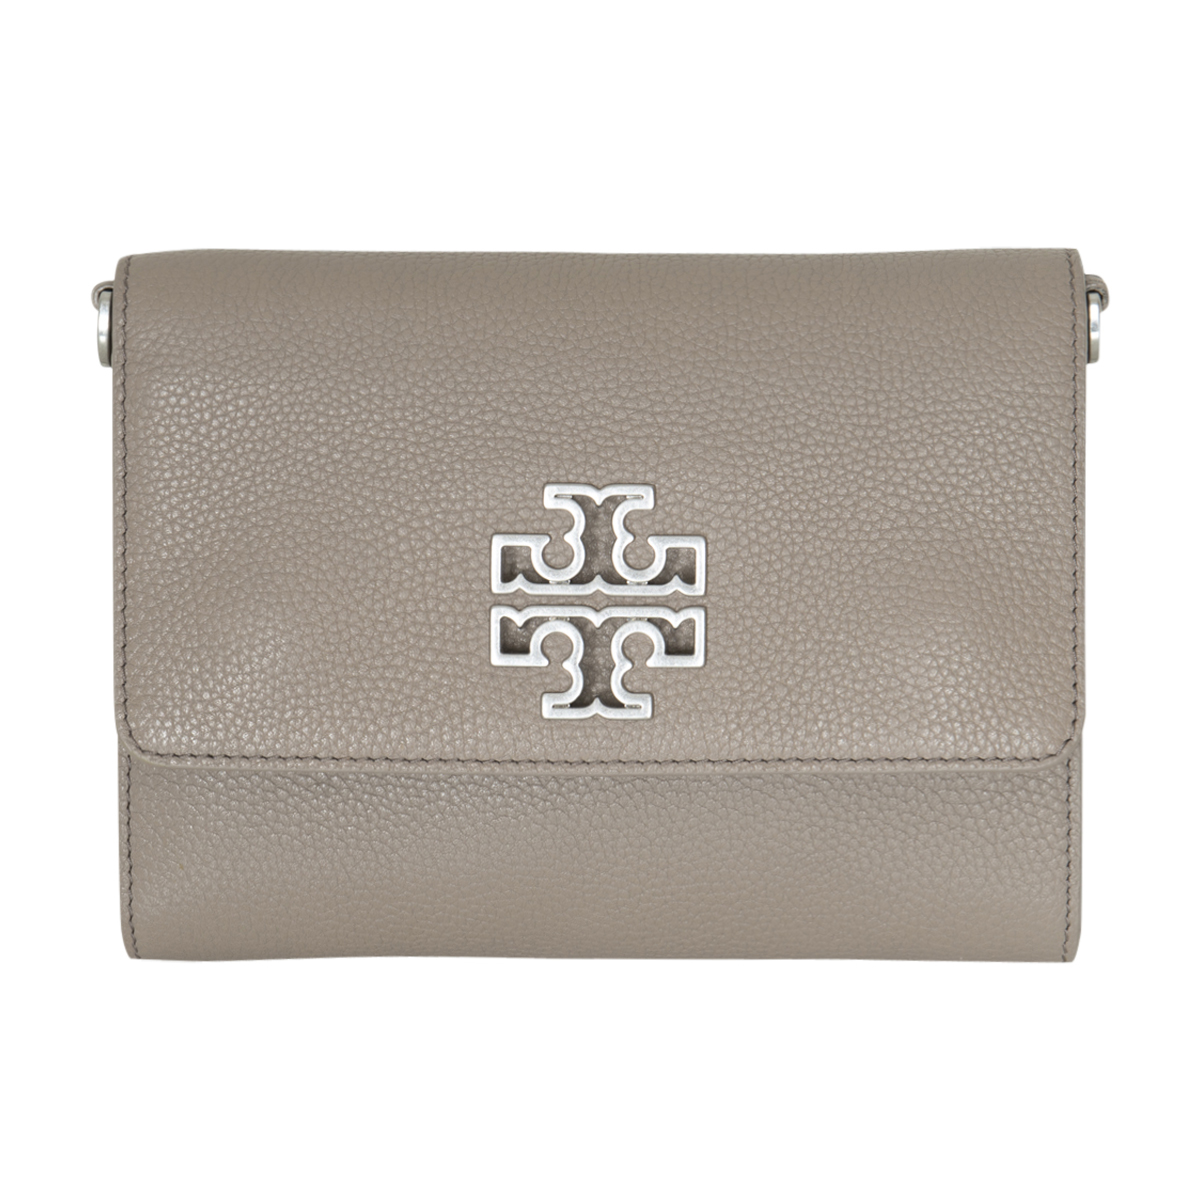 Tory Burch Leather Wallet On Chain